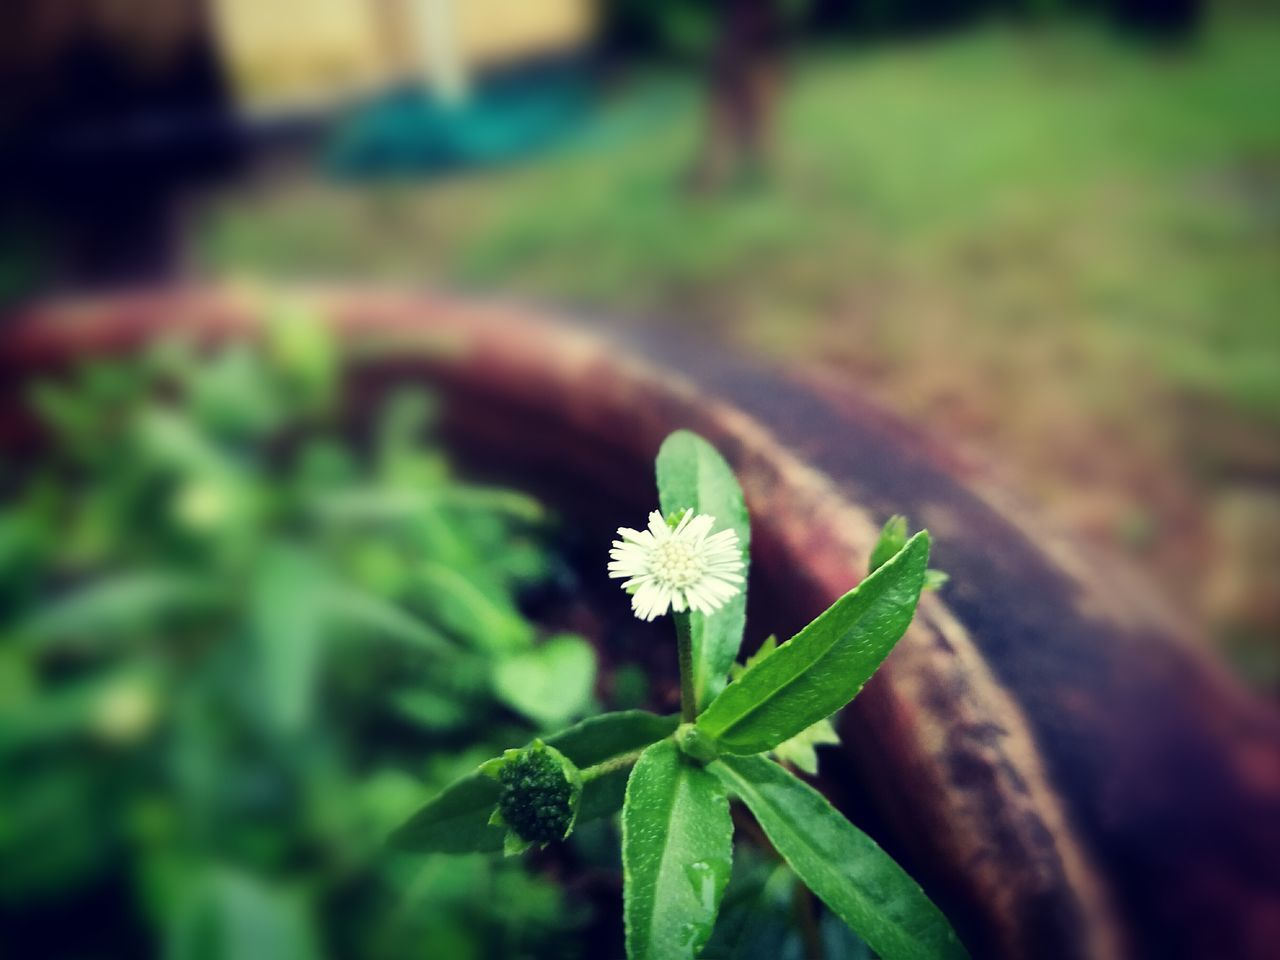 green color, leaf, growth, nature, beauty in nature, flower, plant, fragility, focus on foreground, day, outdoors, close-up, freshness, no people, flower head